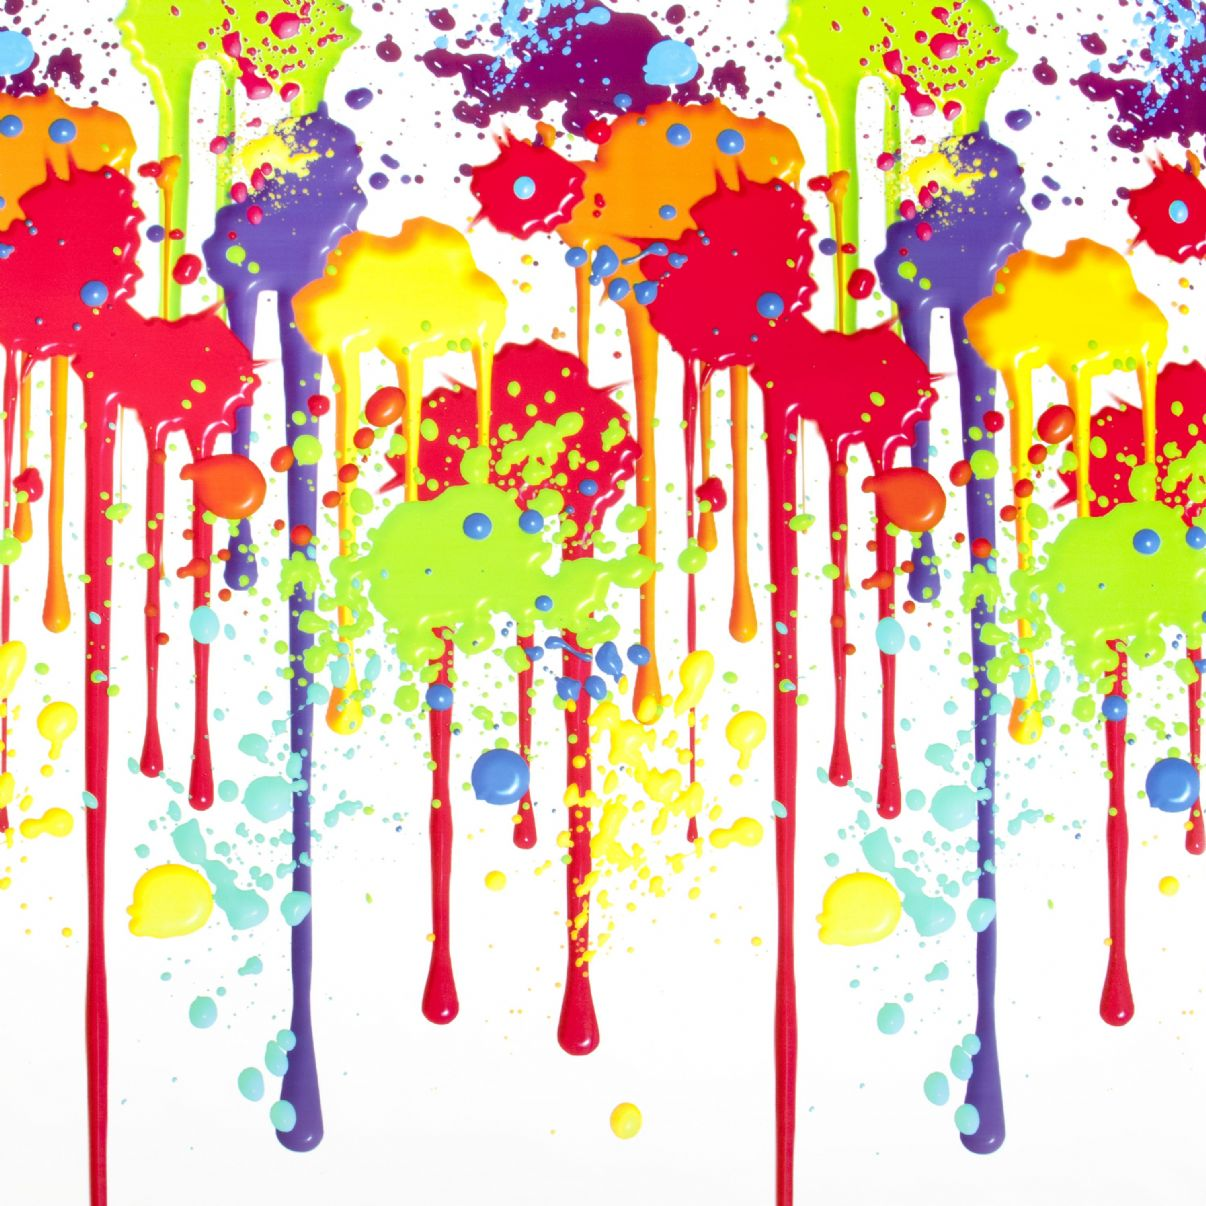 Painting clipart paint drops Free Free Splat  on